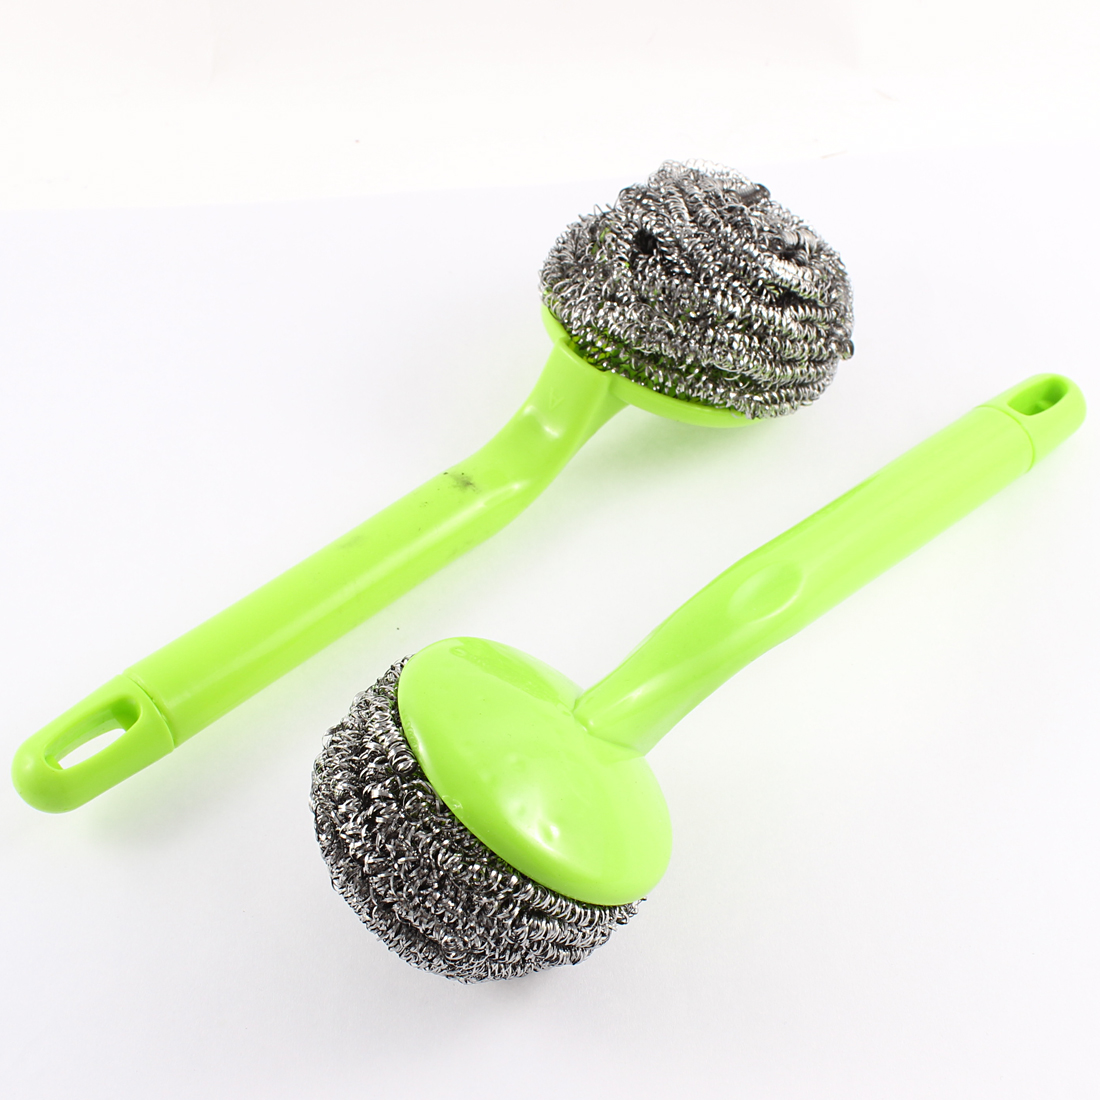 2 Pcs/lot Kitchen Plastic Grip Bowl Pot Cleaning Steel Wire Ball Scourer Brush(China (Mainland))